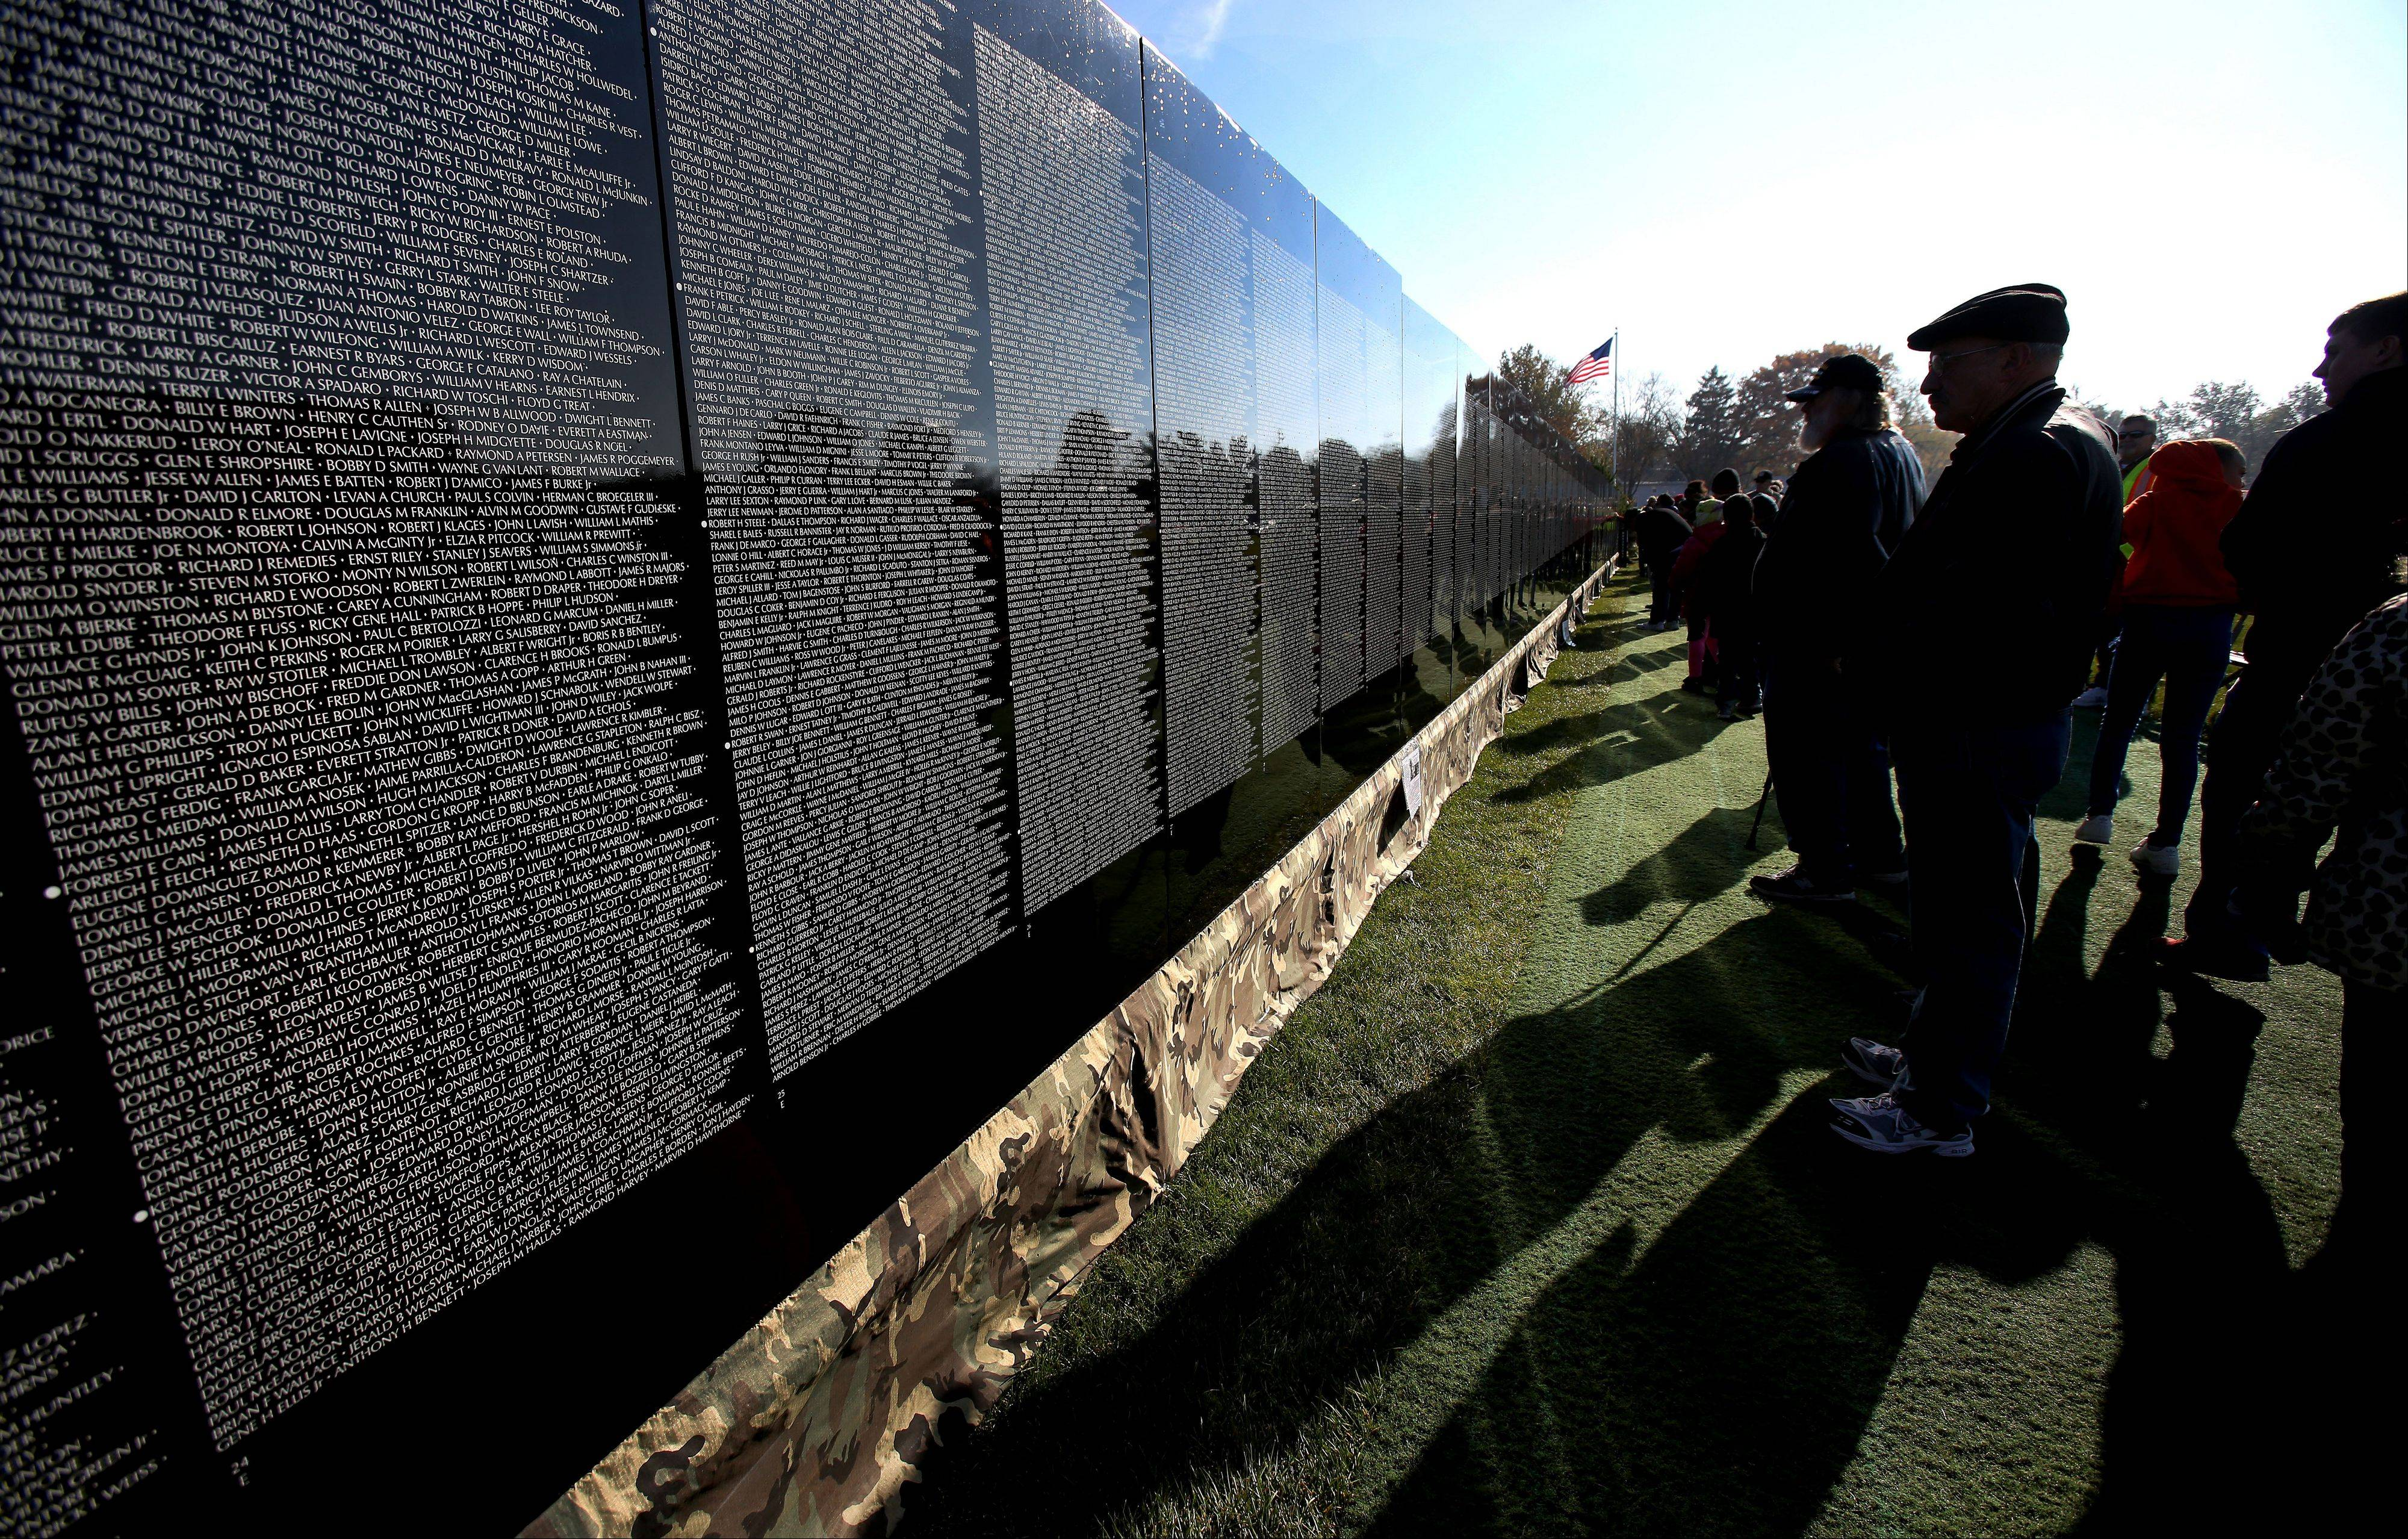 More than 300,000 visitors are expected to view The Moving Wall at West Aurora High School, where it will be on display through Monday.